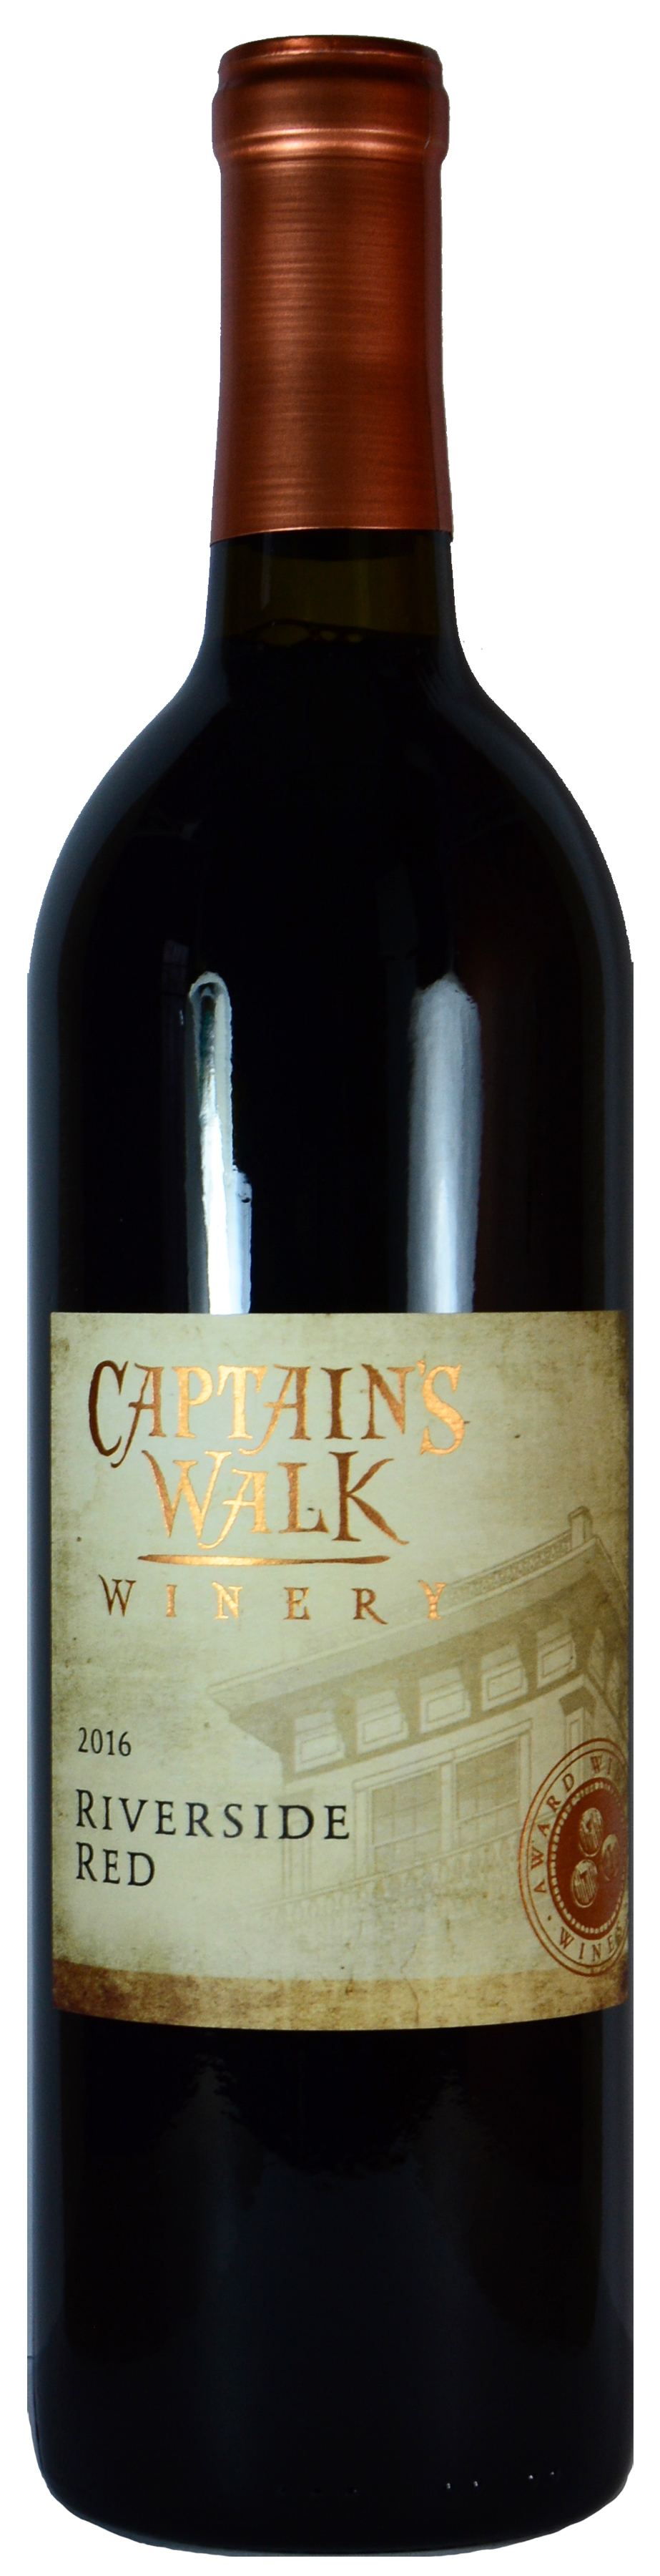 Captain's Walk Riverside Red